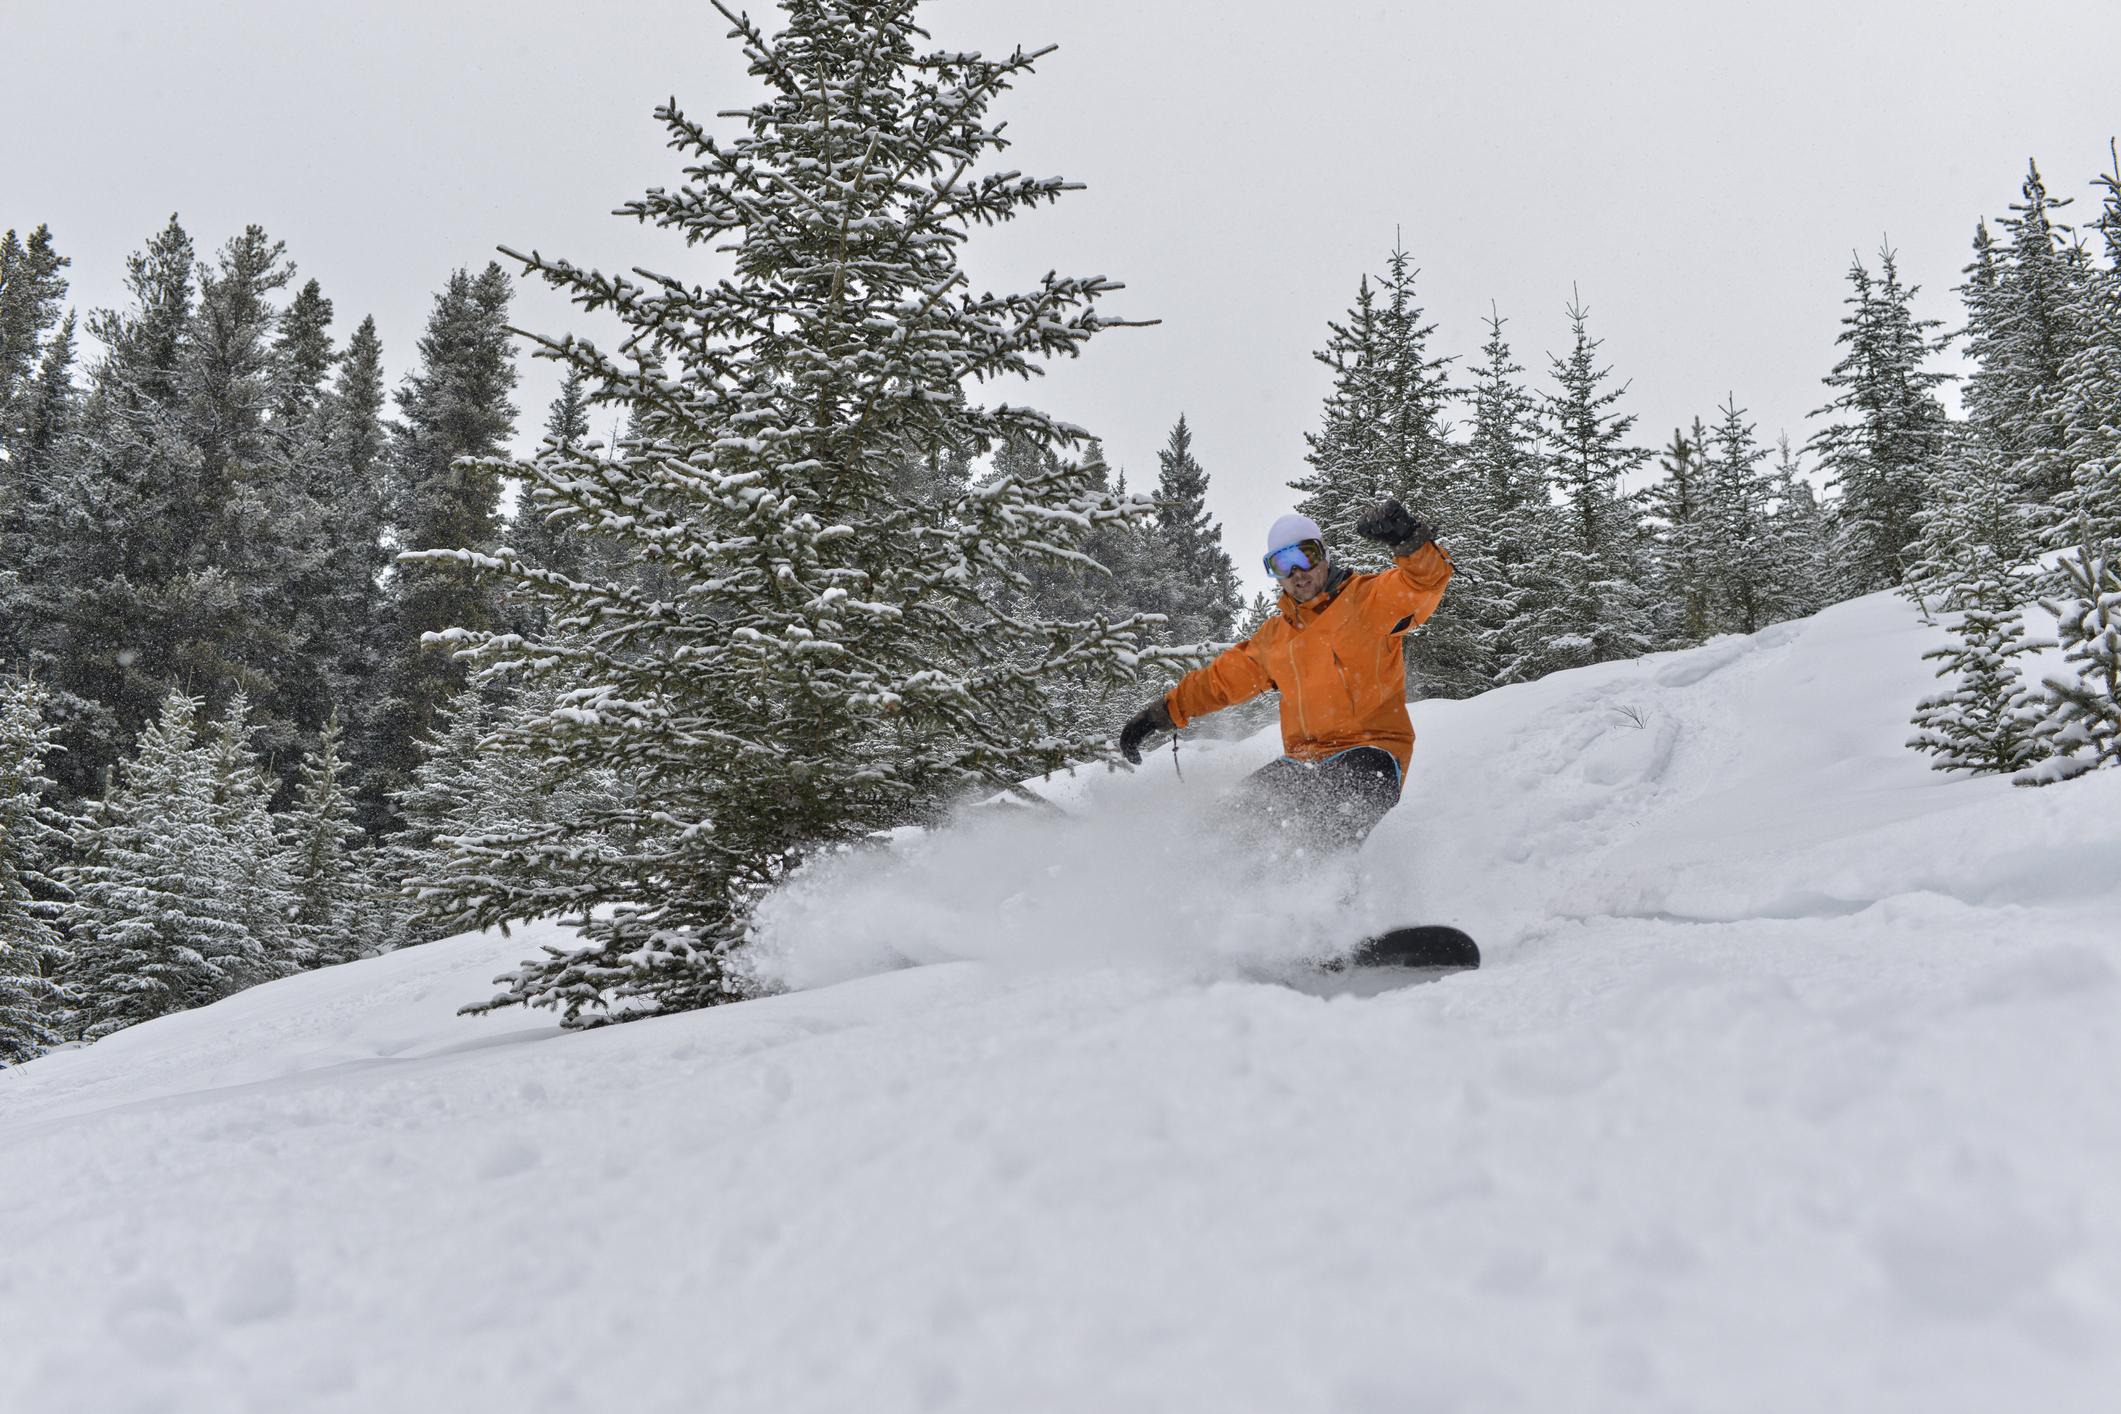 A snowboarder in an orange jacket hurtling down a slope.